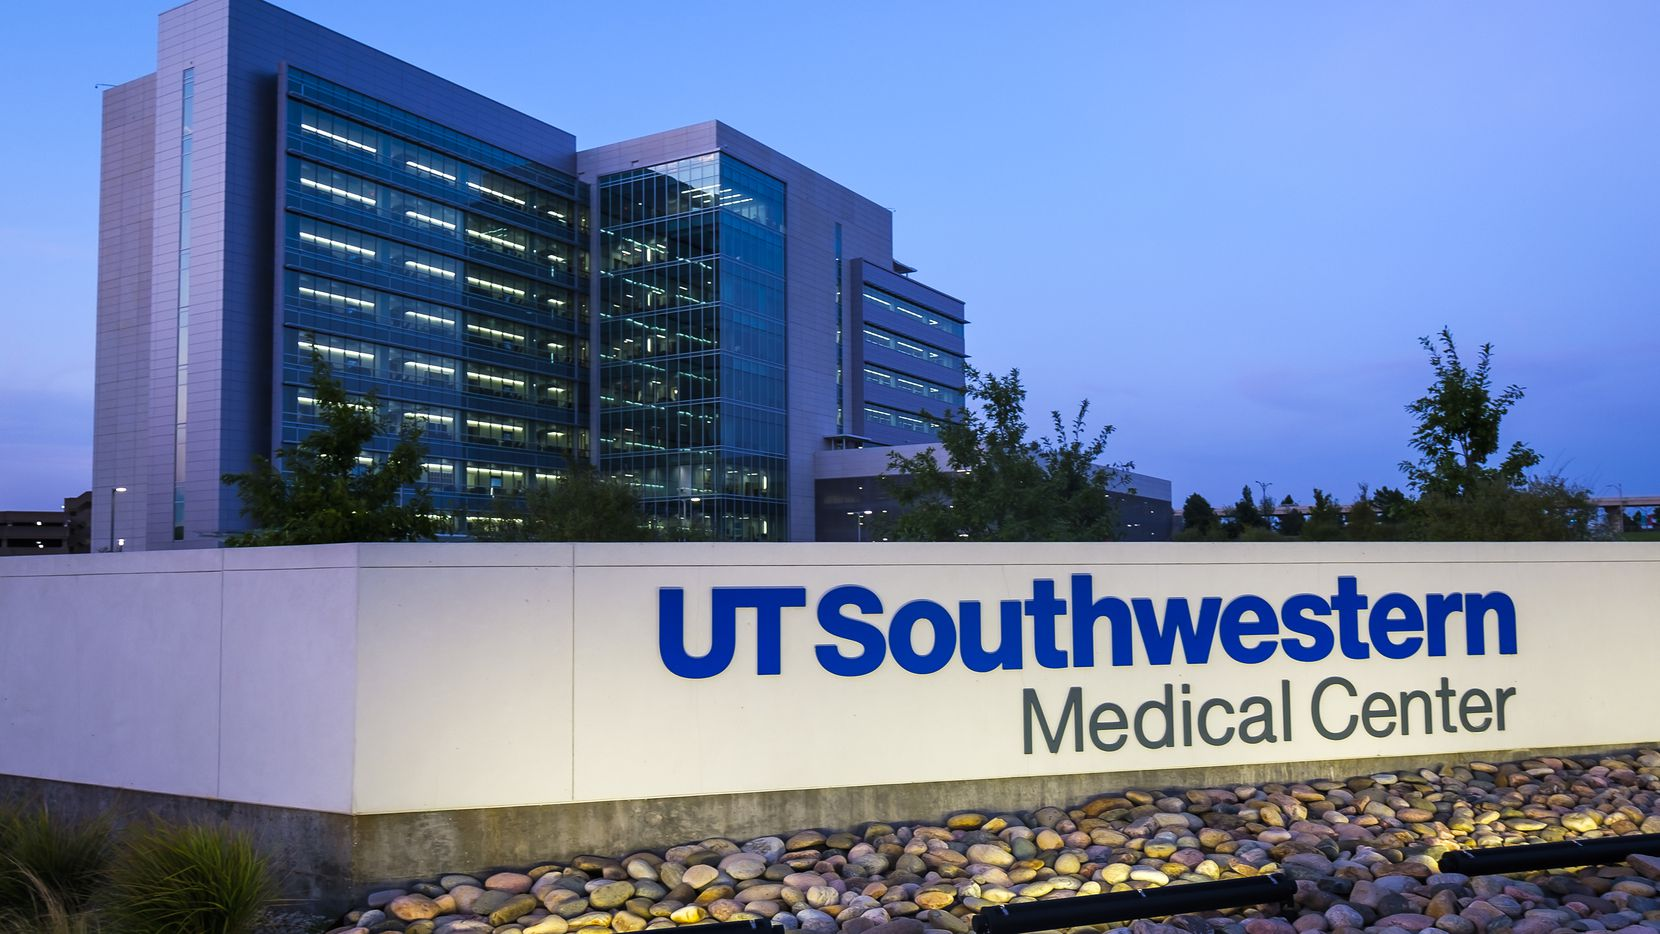 UT Southwestern is the biggest beneficiary of cancer research grants for the Cancer Prevention and Research Insitute of Texas.